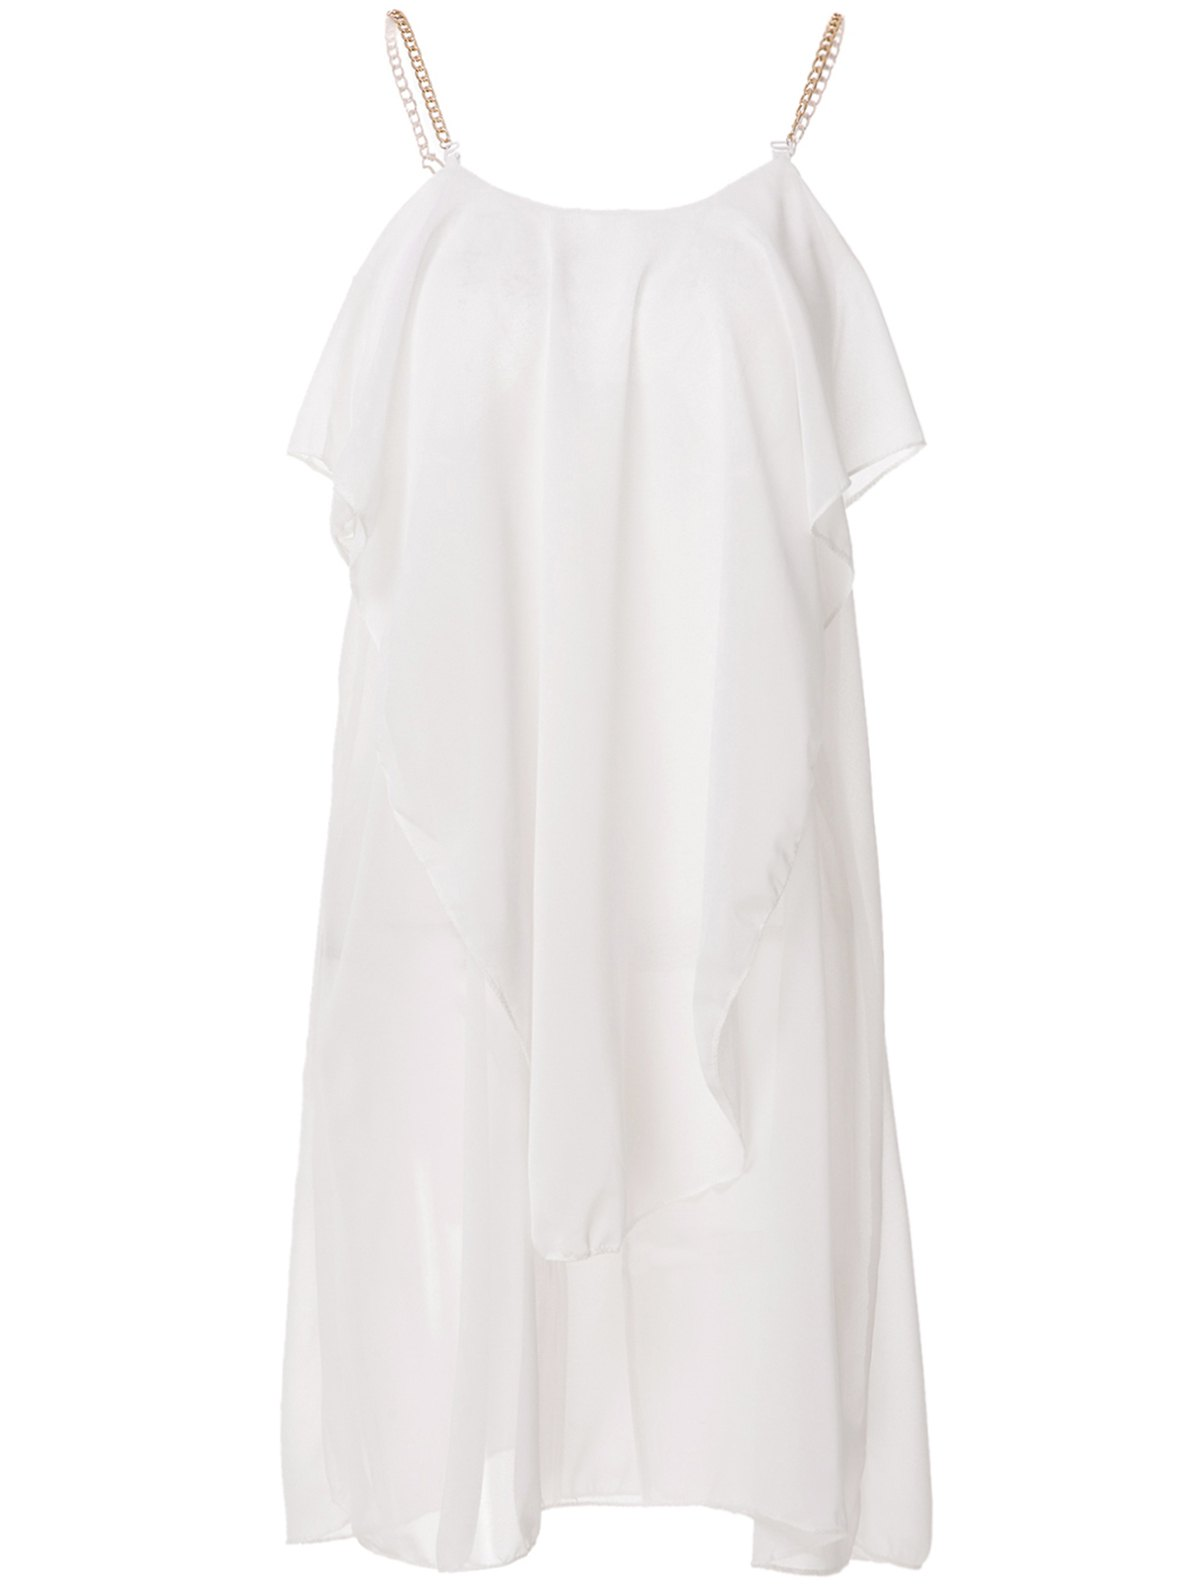 Stylish Women's Spaghetti Strap Solid Color Ruffled Chiffon Dress - WHITE L